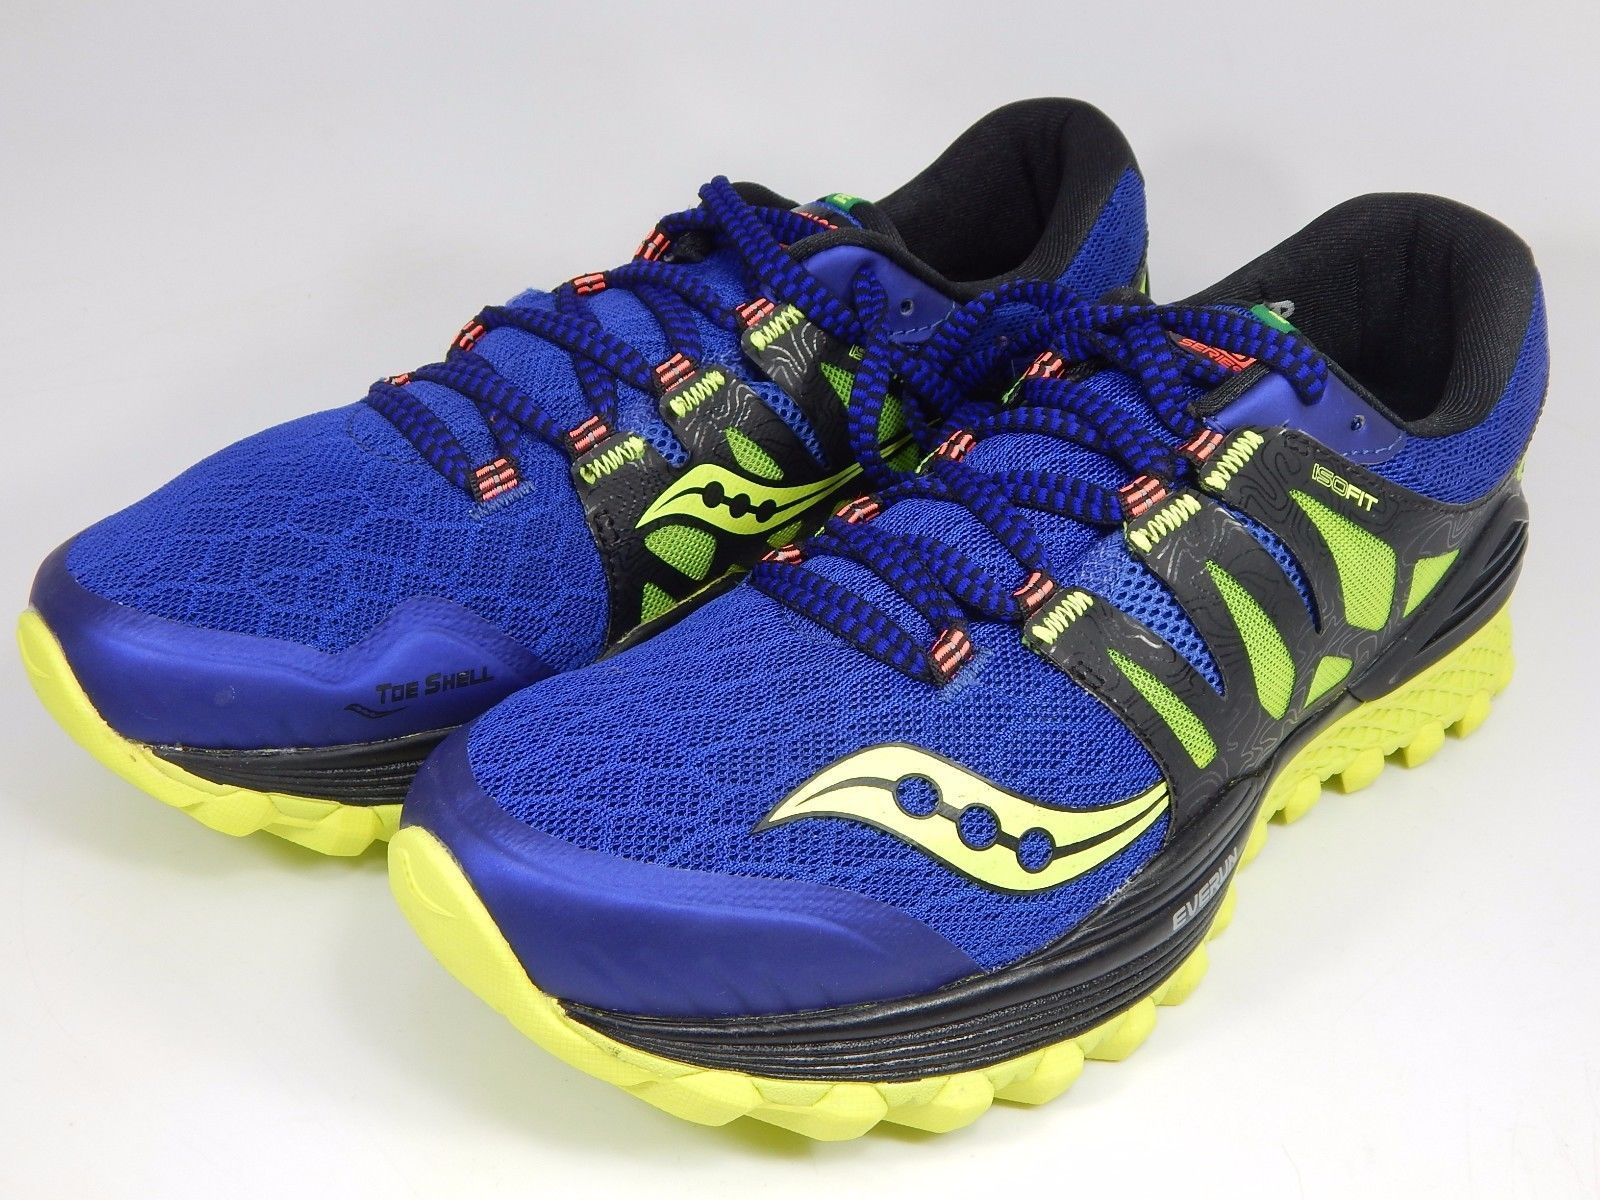 Saucony Xodus ISO Men's Trail Running Shoes Sz US 9 M (D) EU 42.5 Blue S20325-2